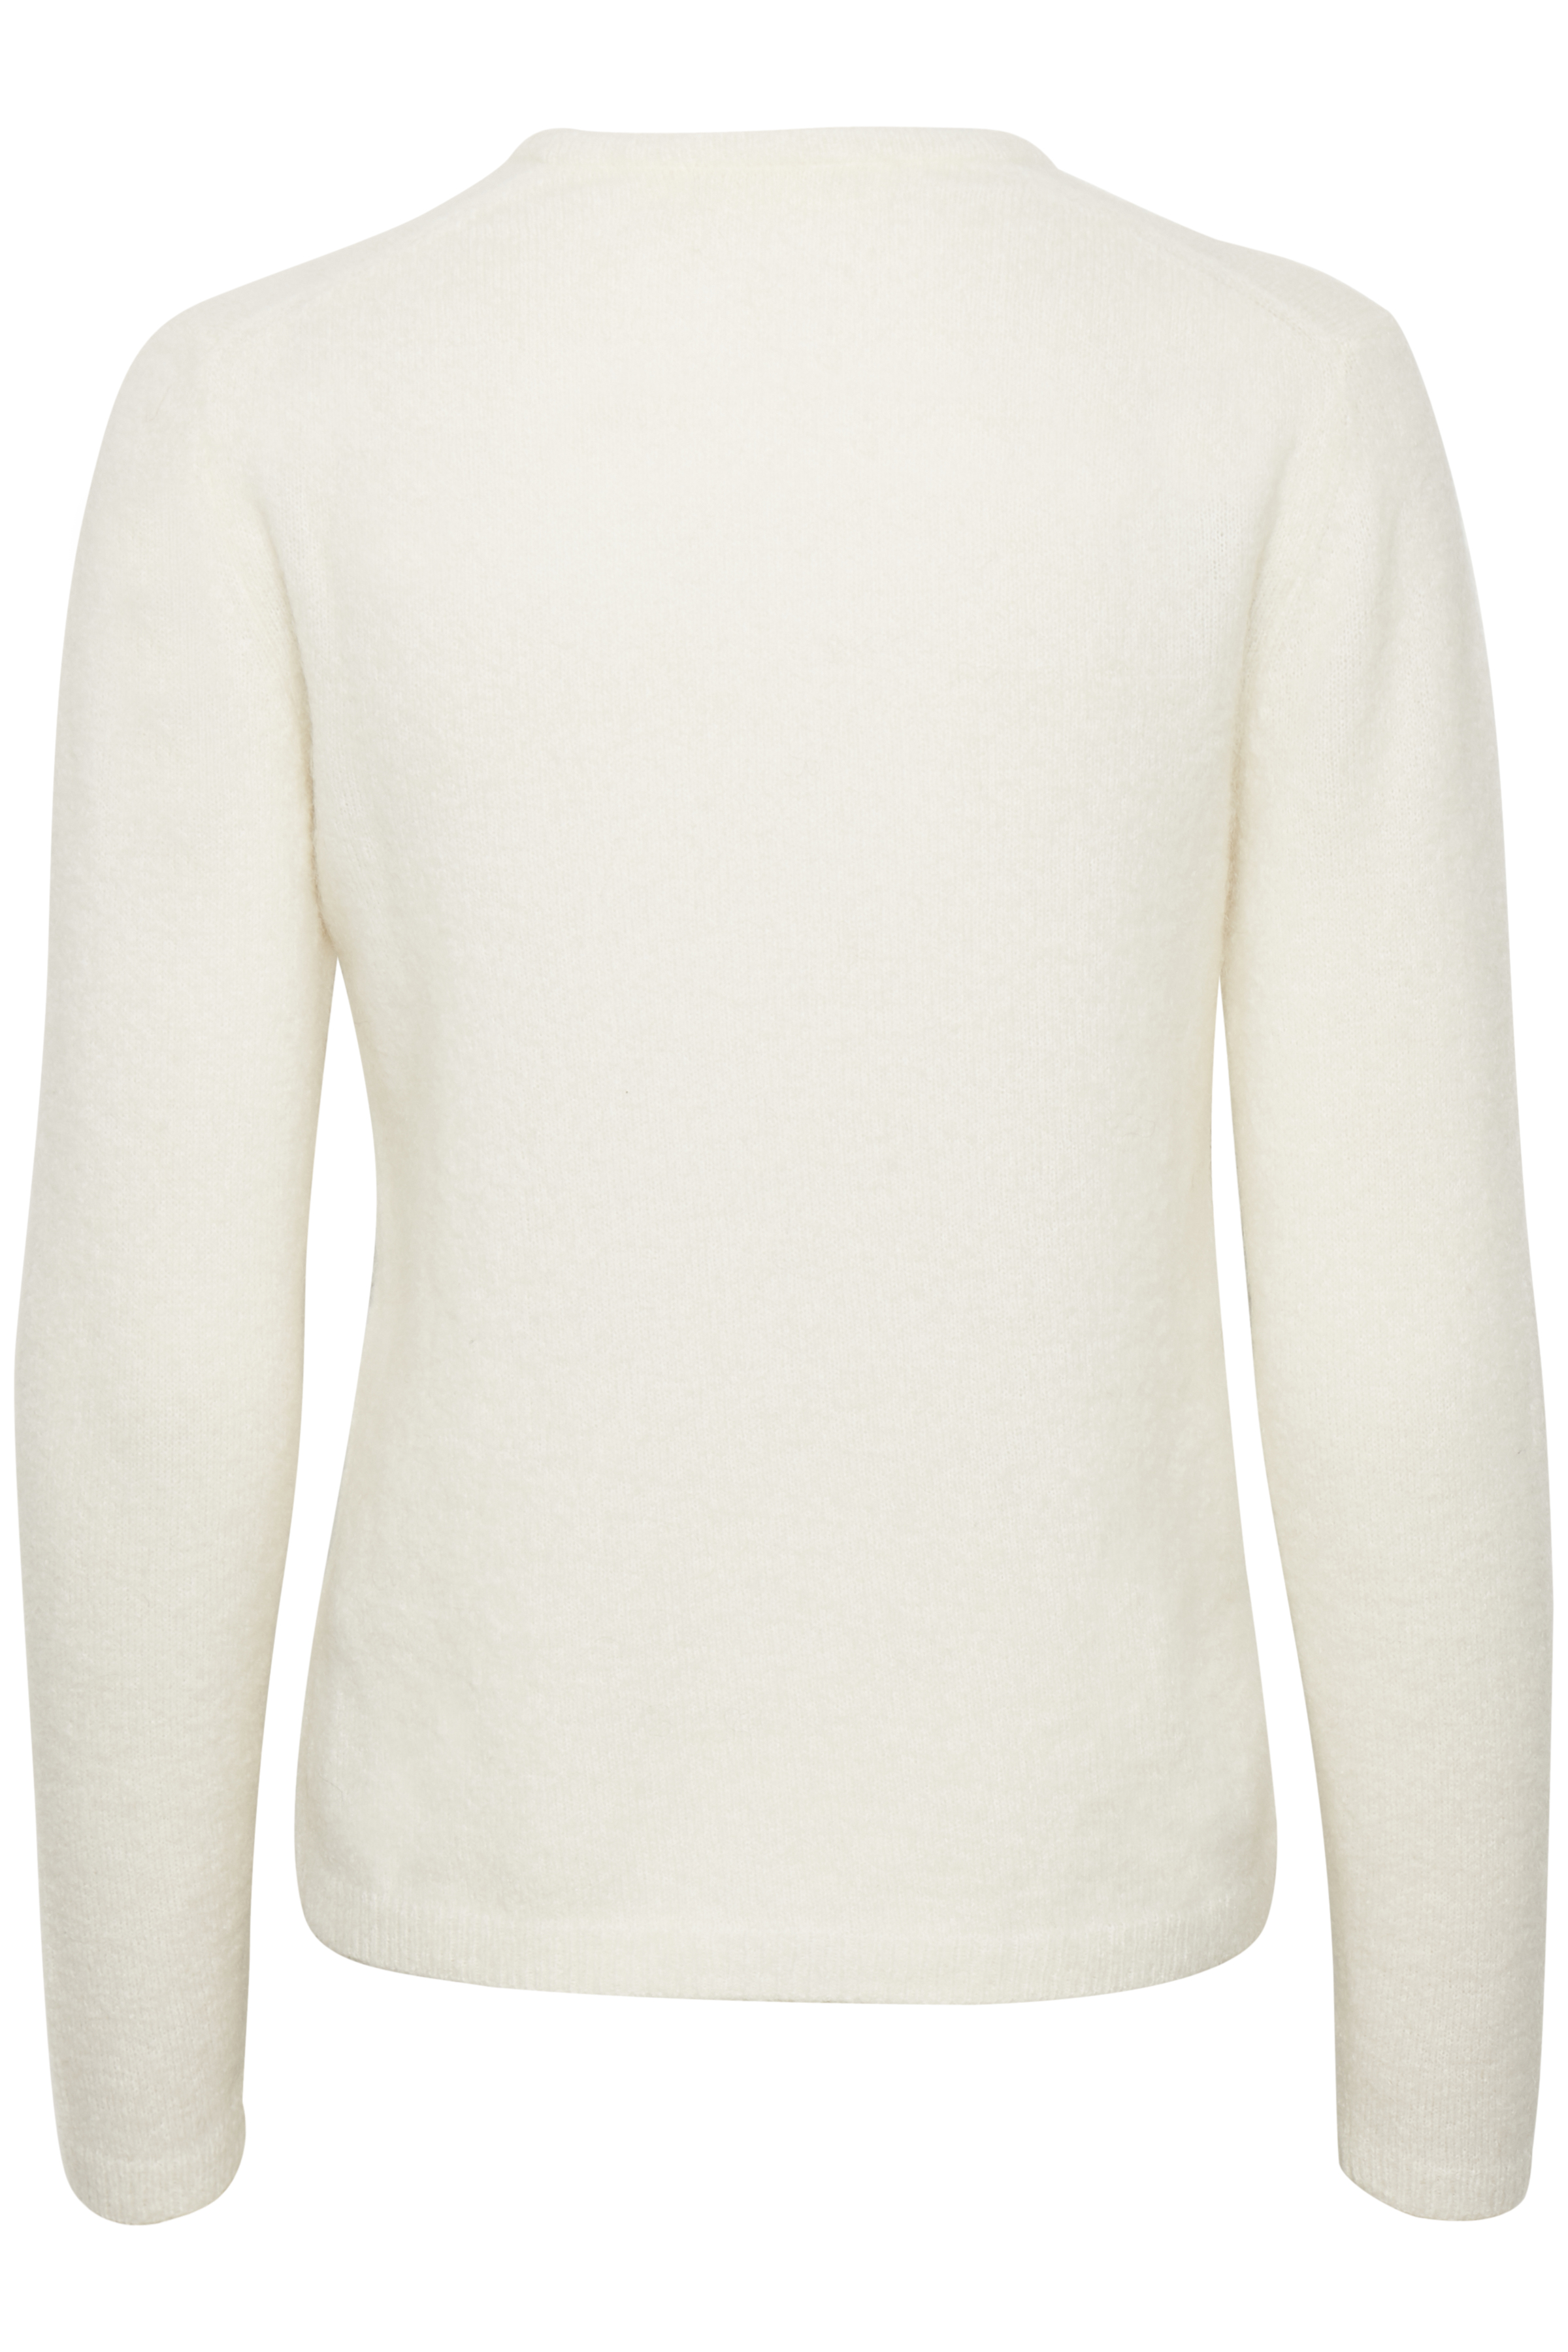 White Smoke Strikpullover – Køb White Smoke Strikpullover fra str. S-L her